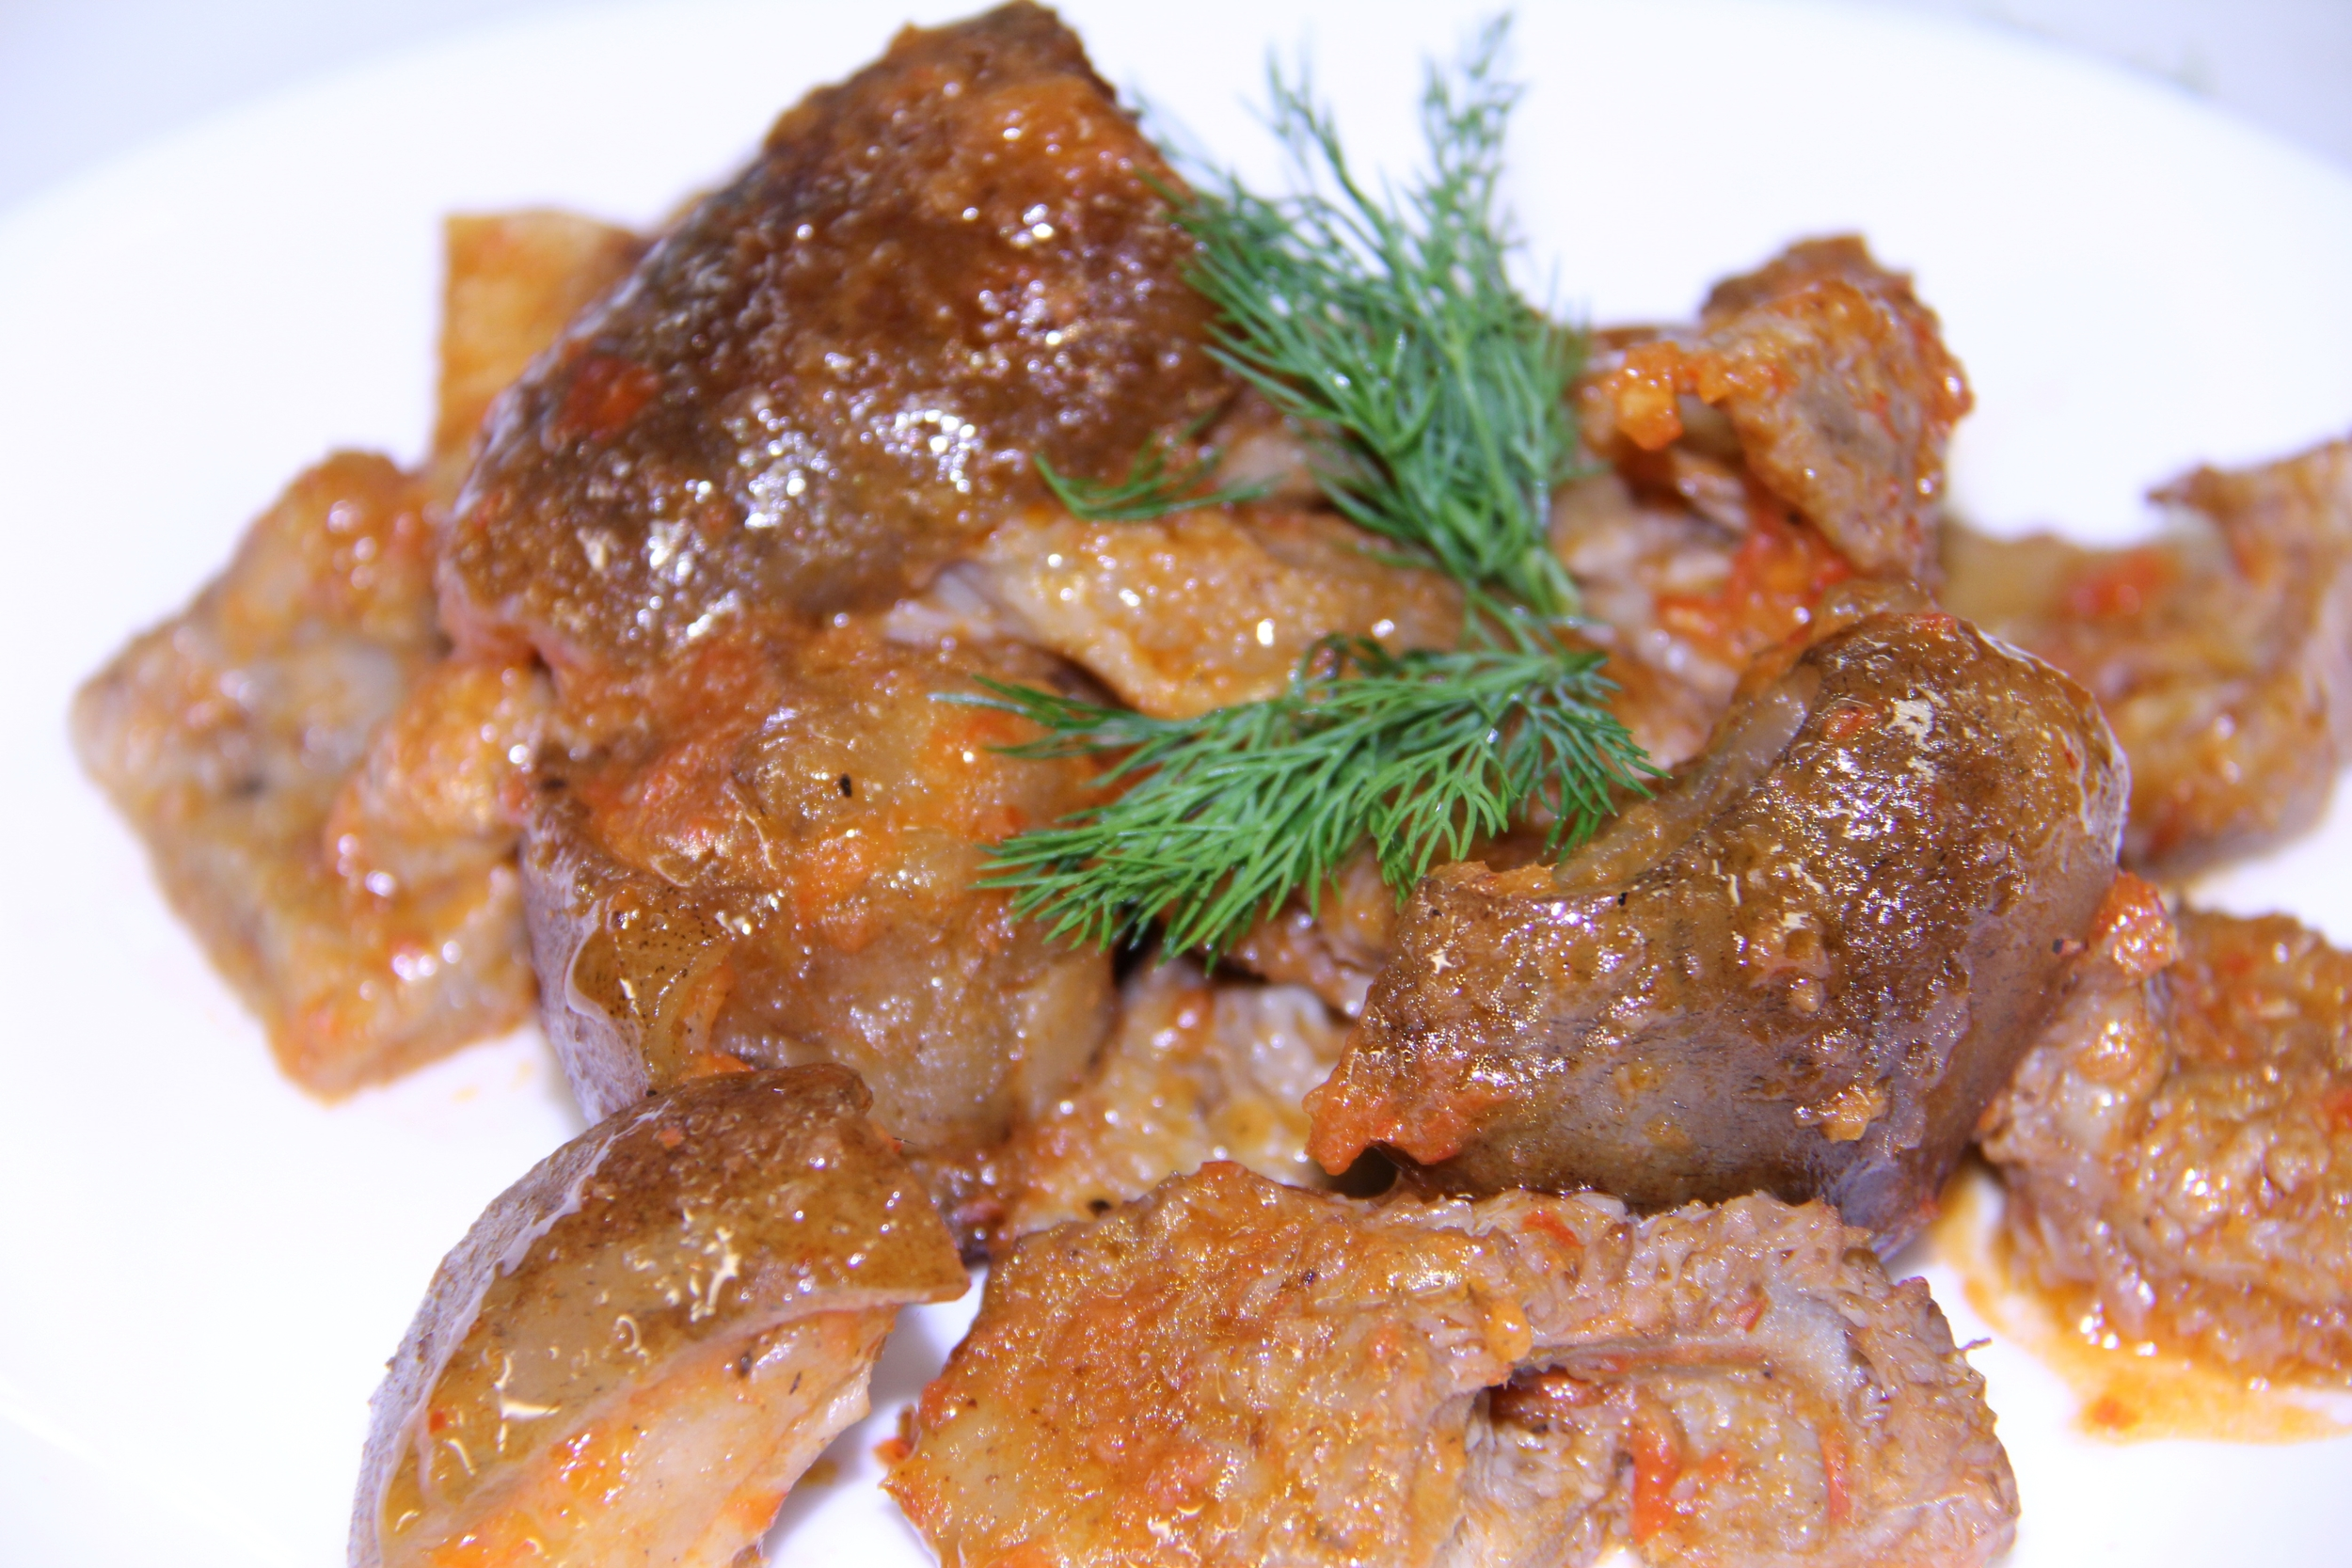 Tripe and Assorted Beef Organs in Sauce